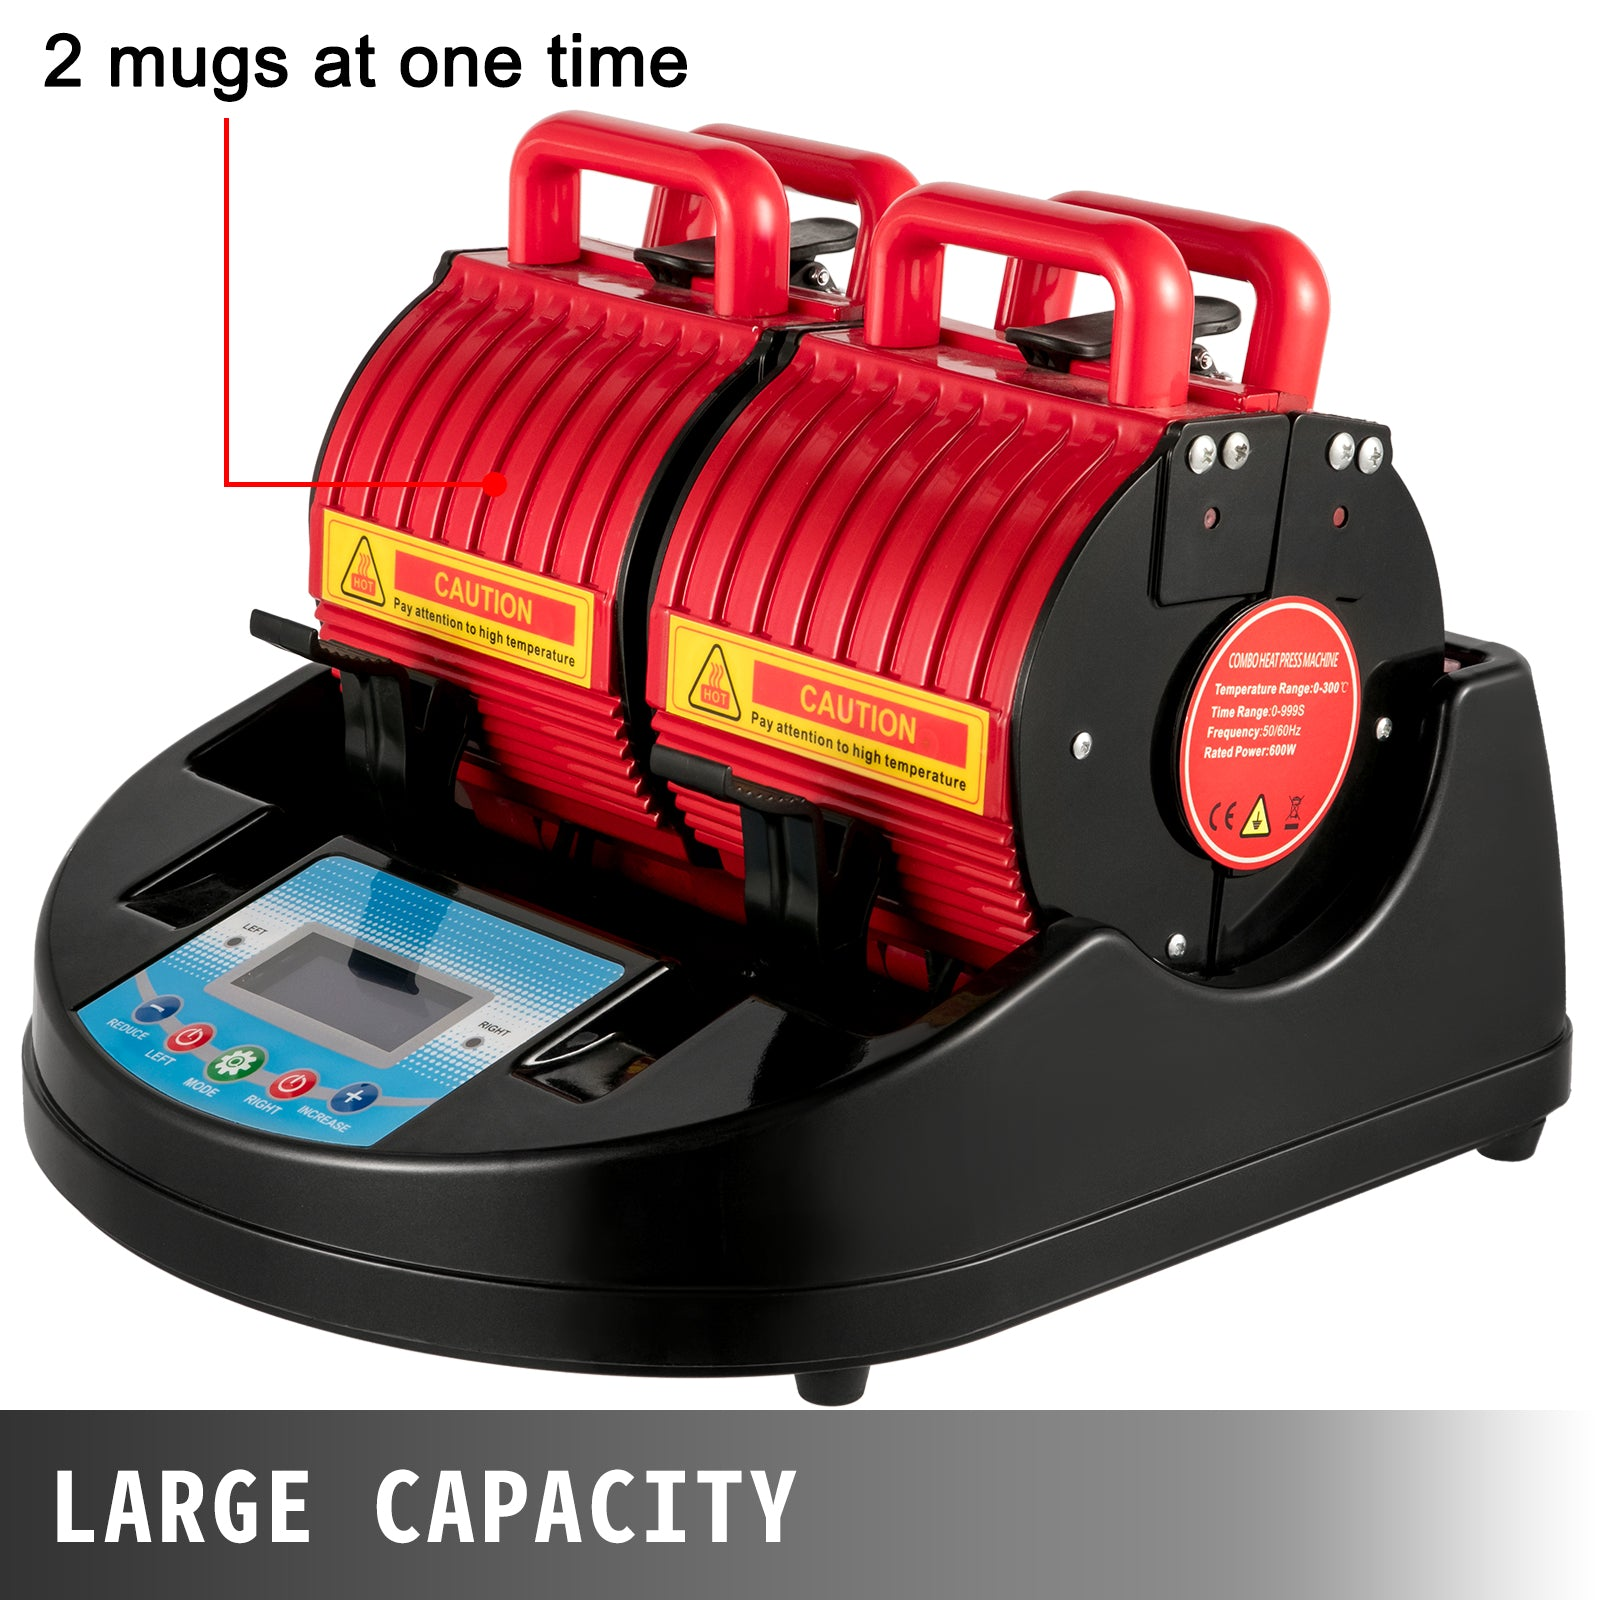 Mug Press Mug Heat Press 1200w Red Heat Press Bottle Mug Cup Heat Press Machine